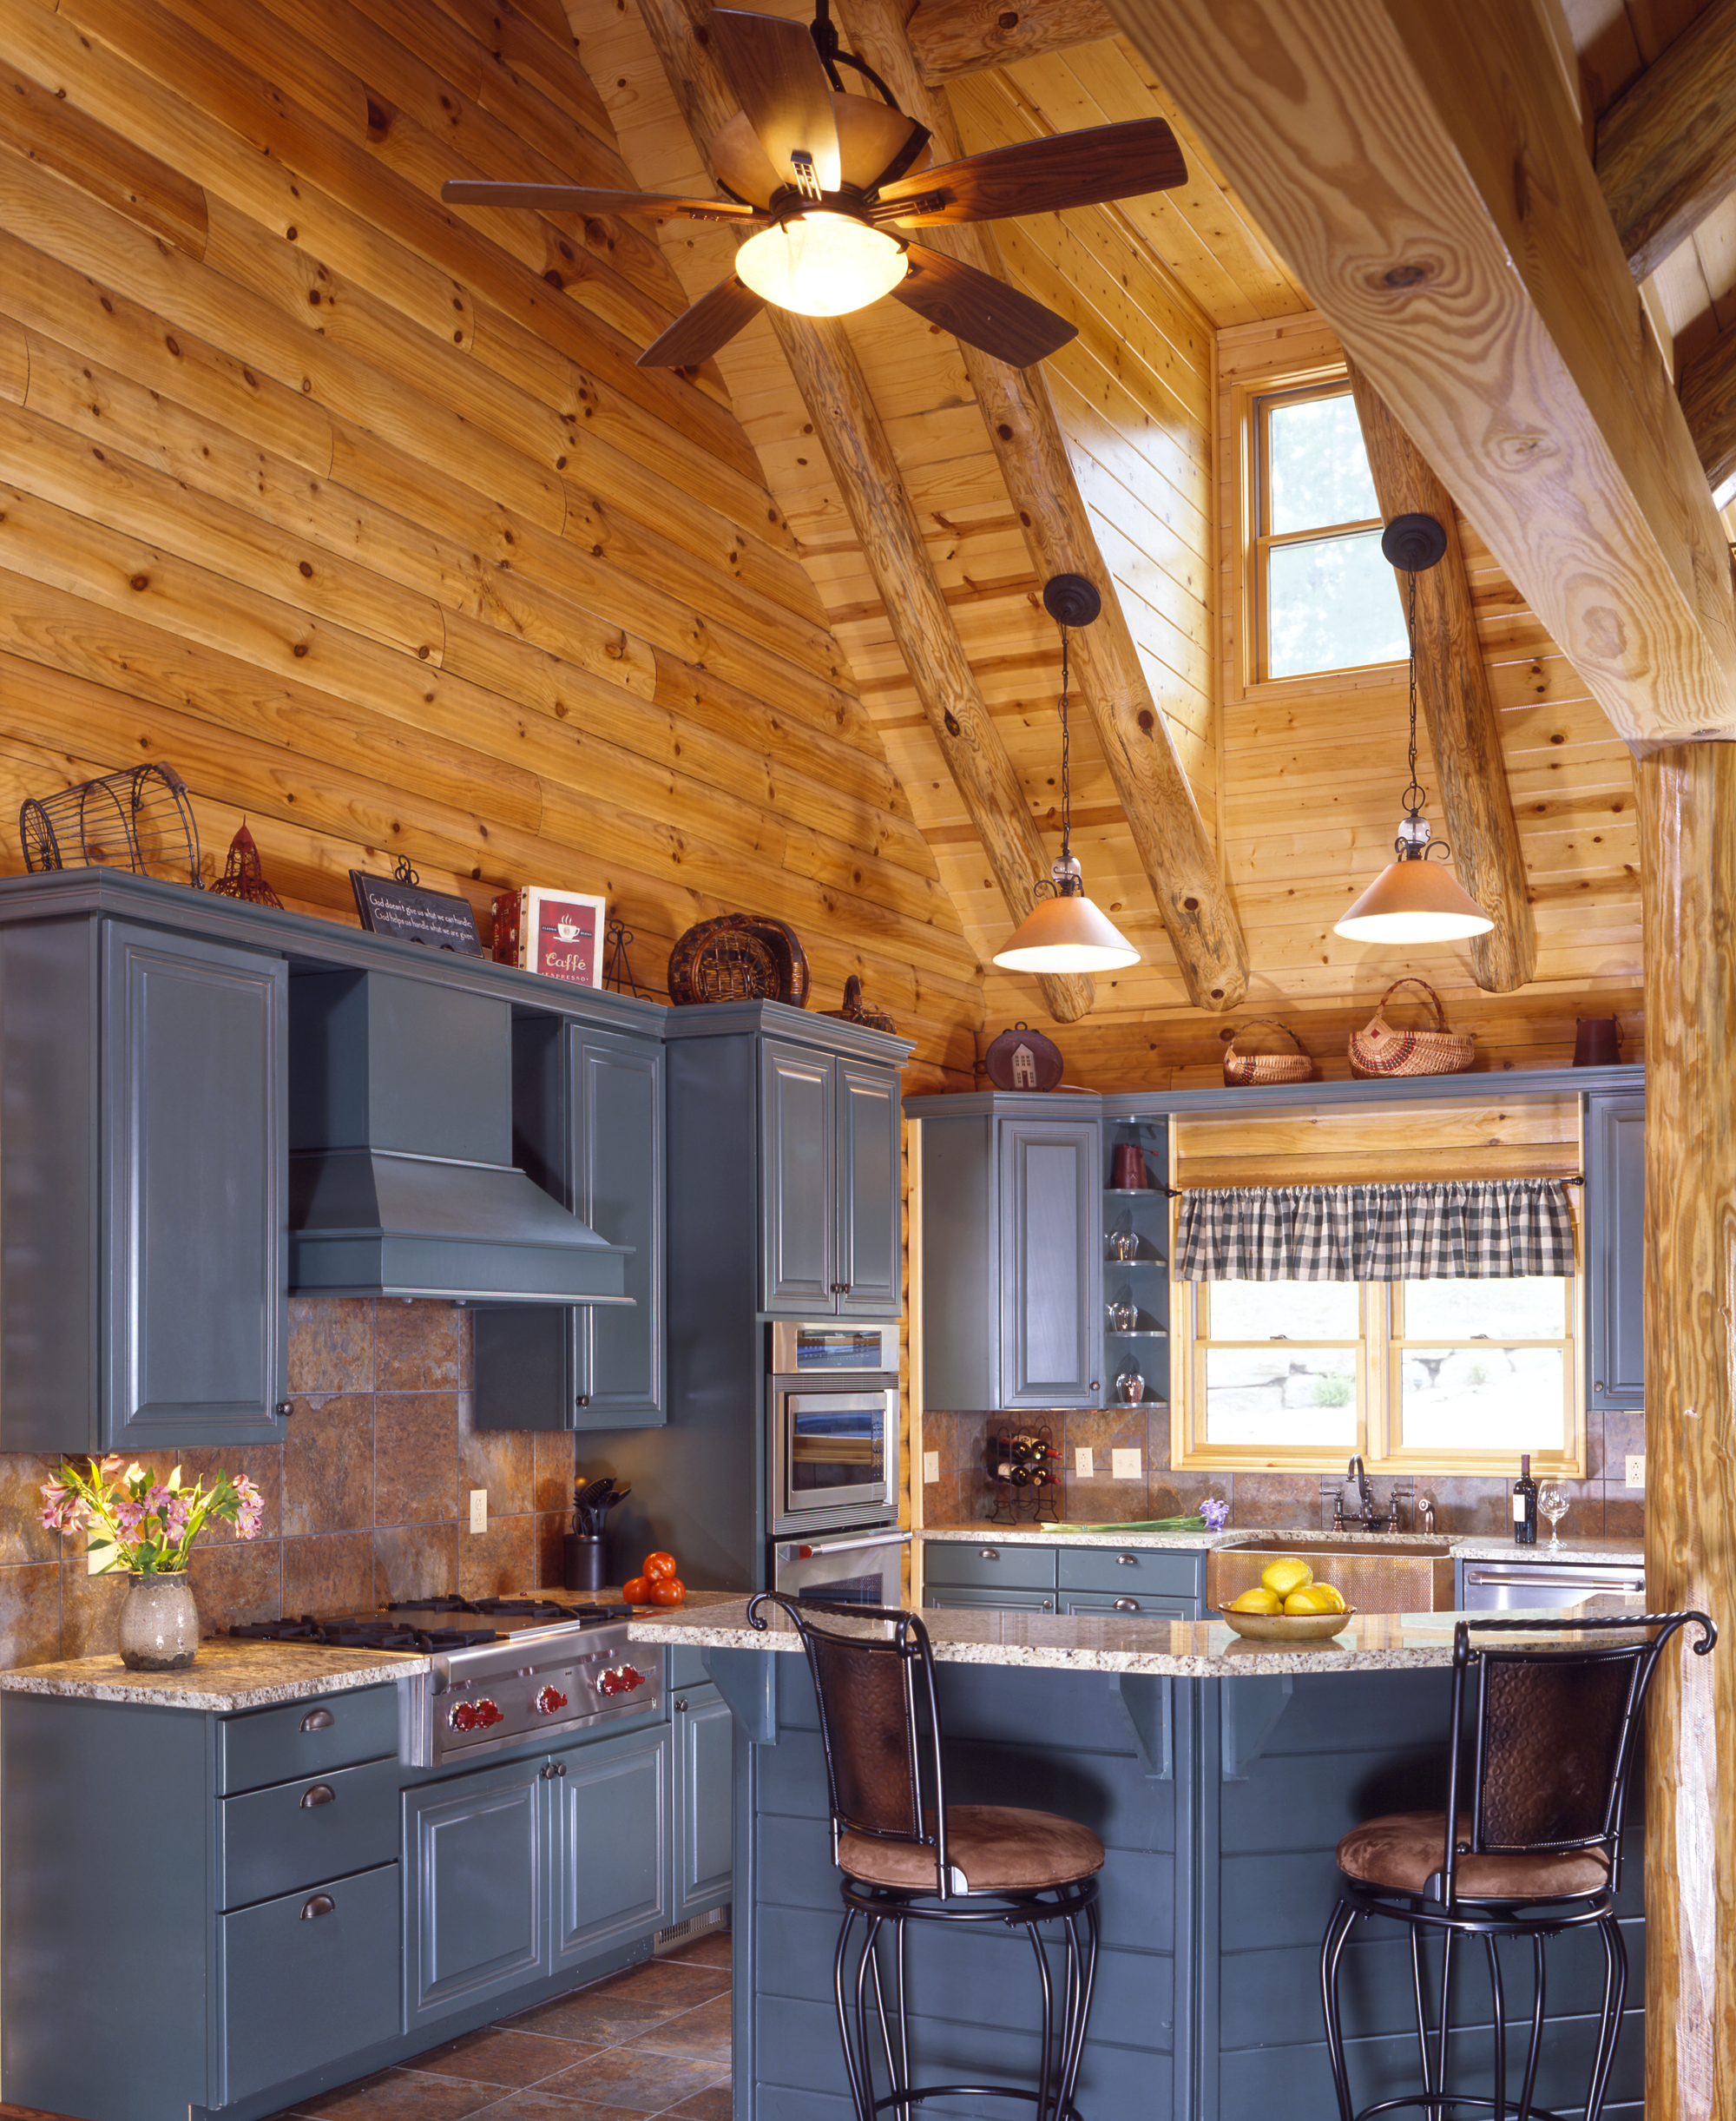 Ordinaire Log Home Kitchen Layout: The Work Triangle And Beyond